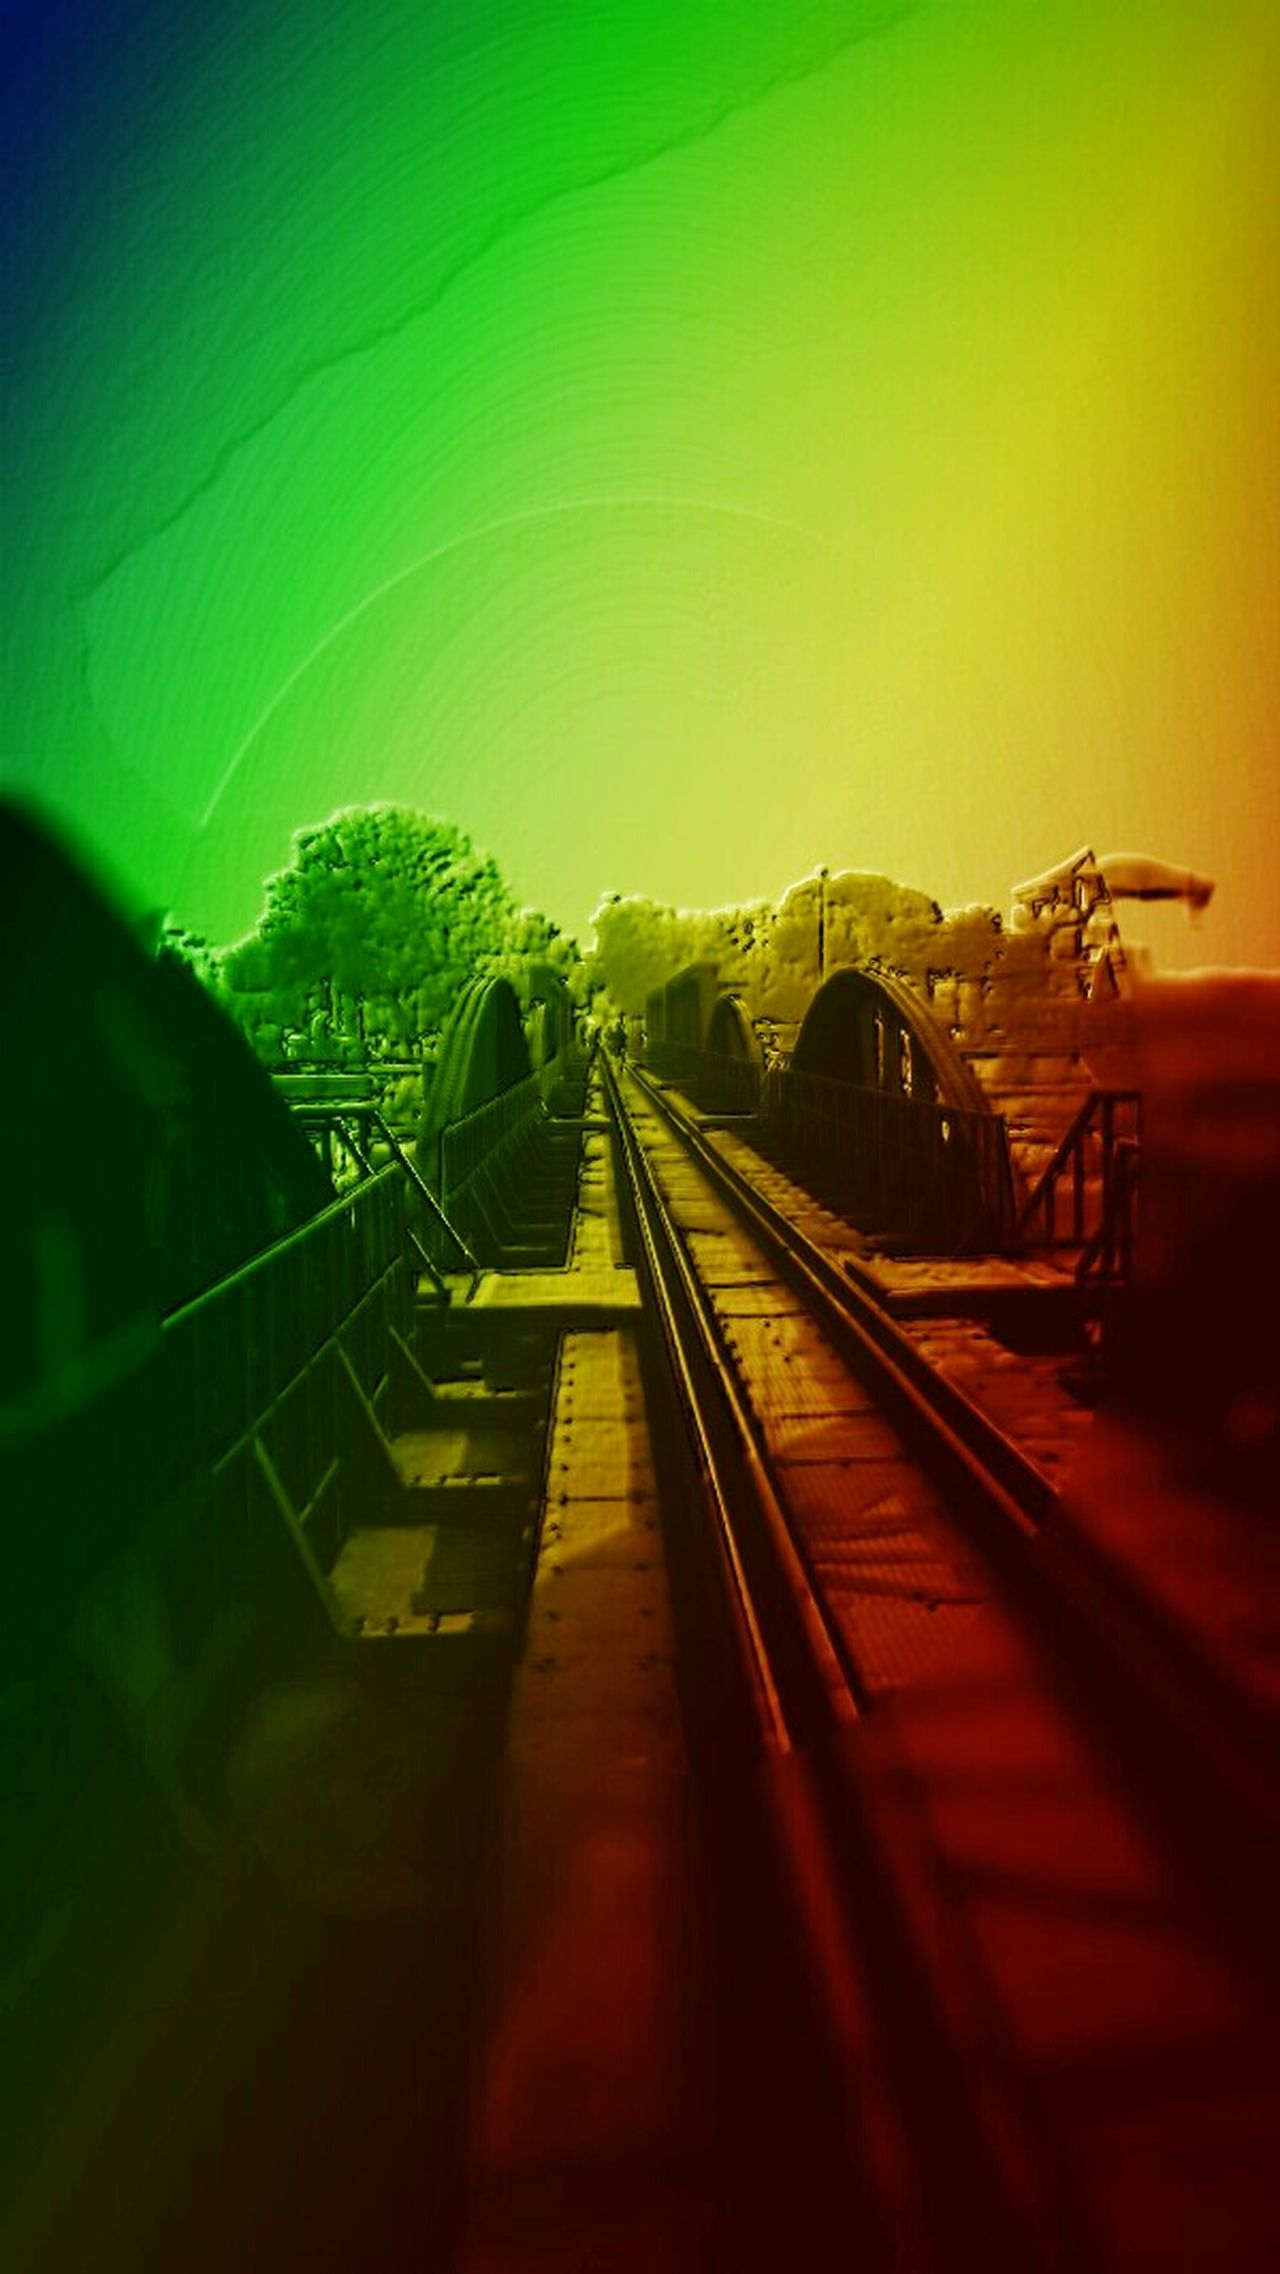 Rainbows, Engraving, Bridge, Architecture, Railway Tracks, Getting In Spired. .